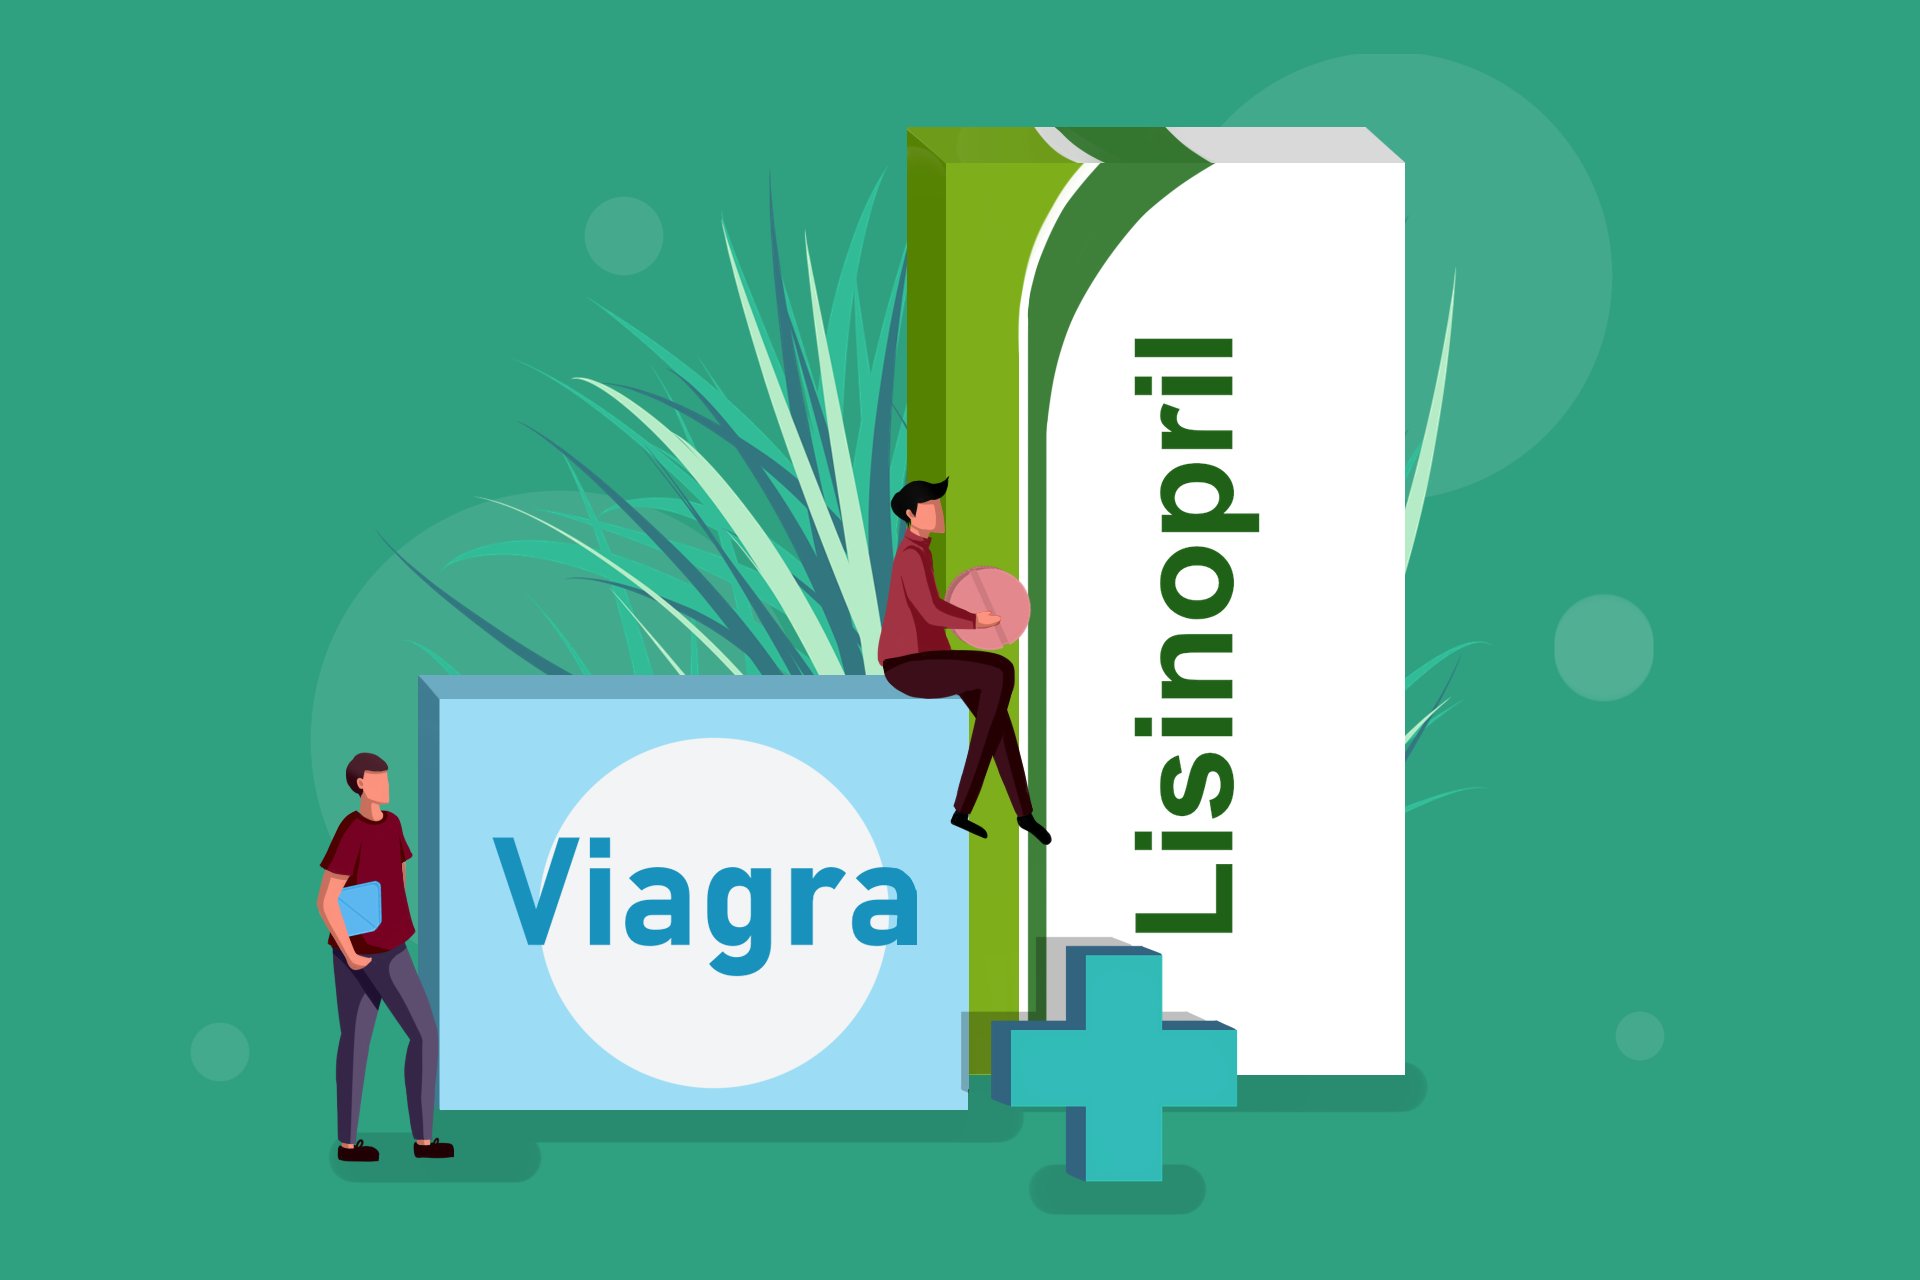 Viagra and Lisinopril